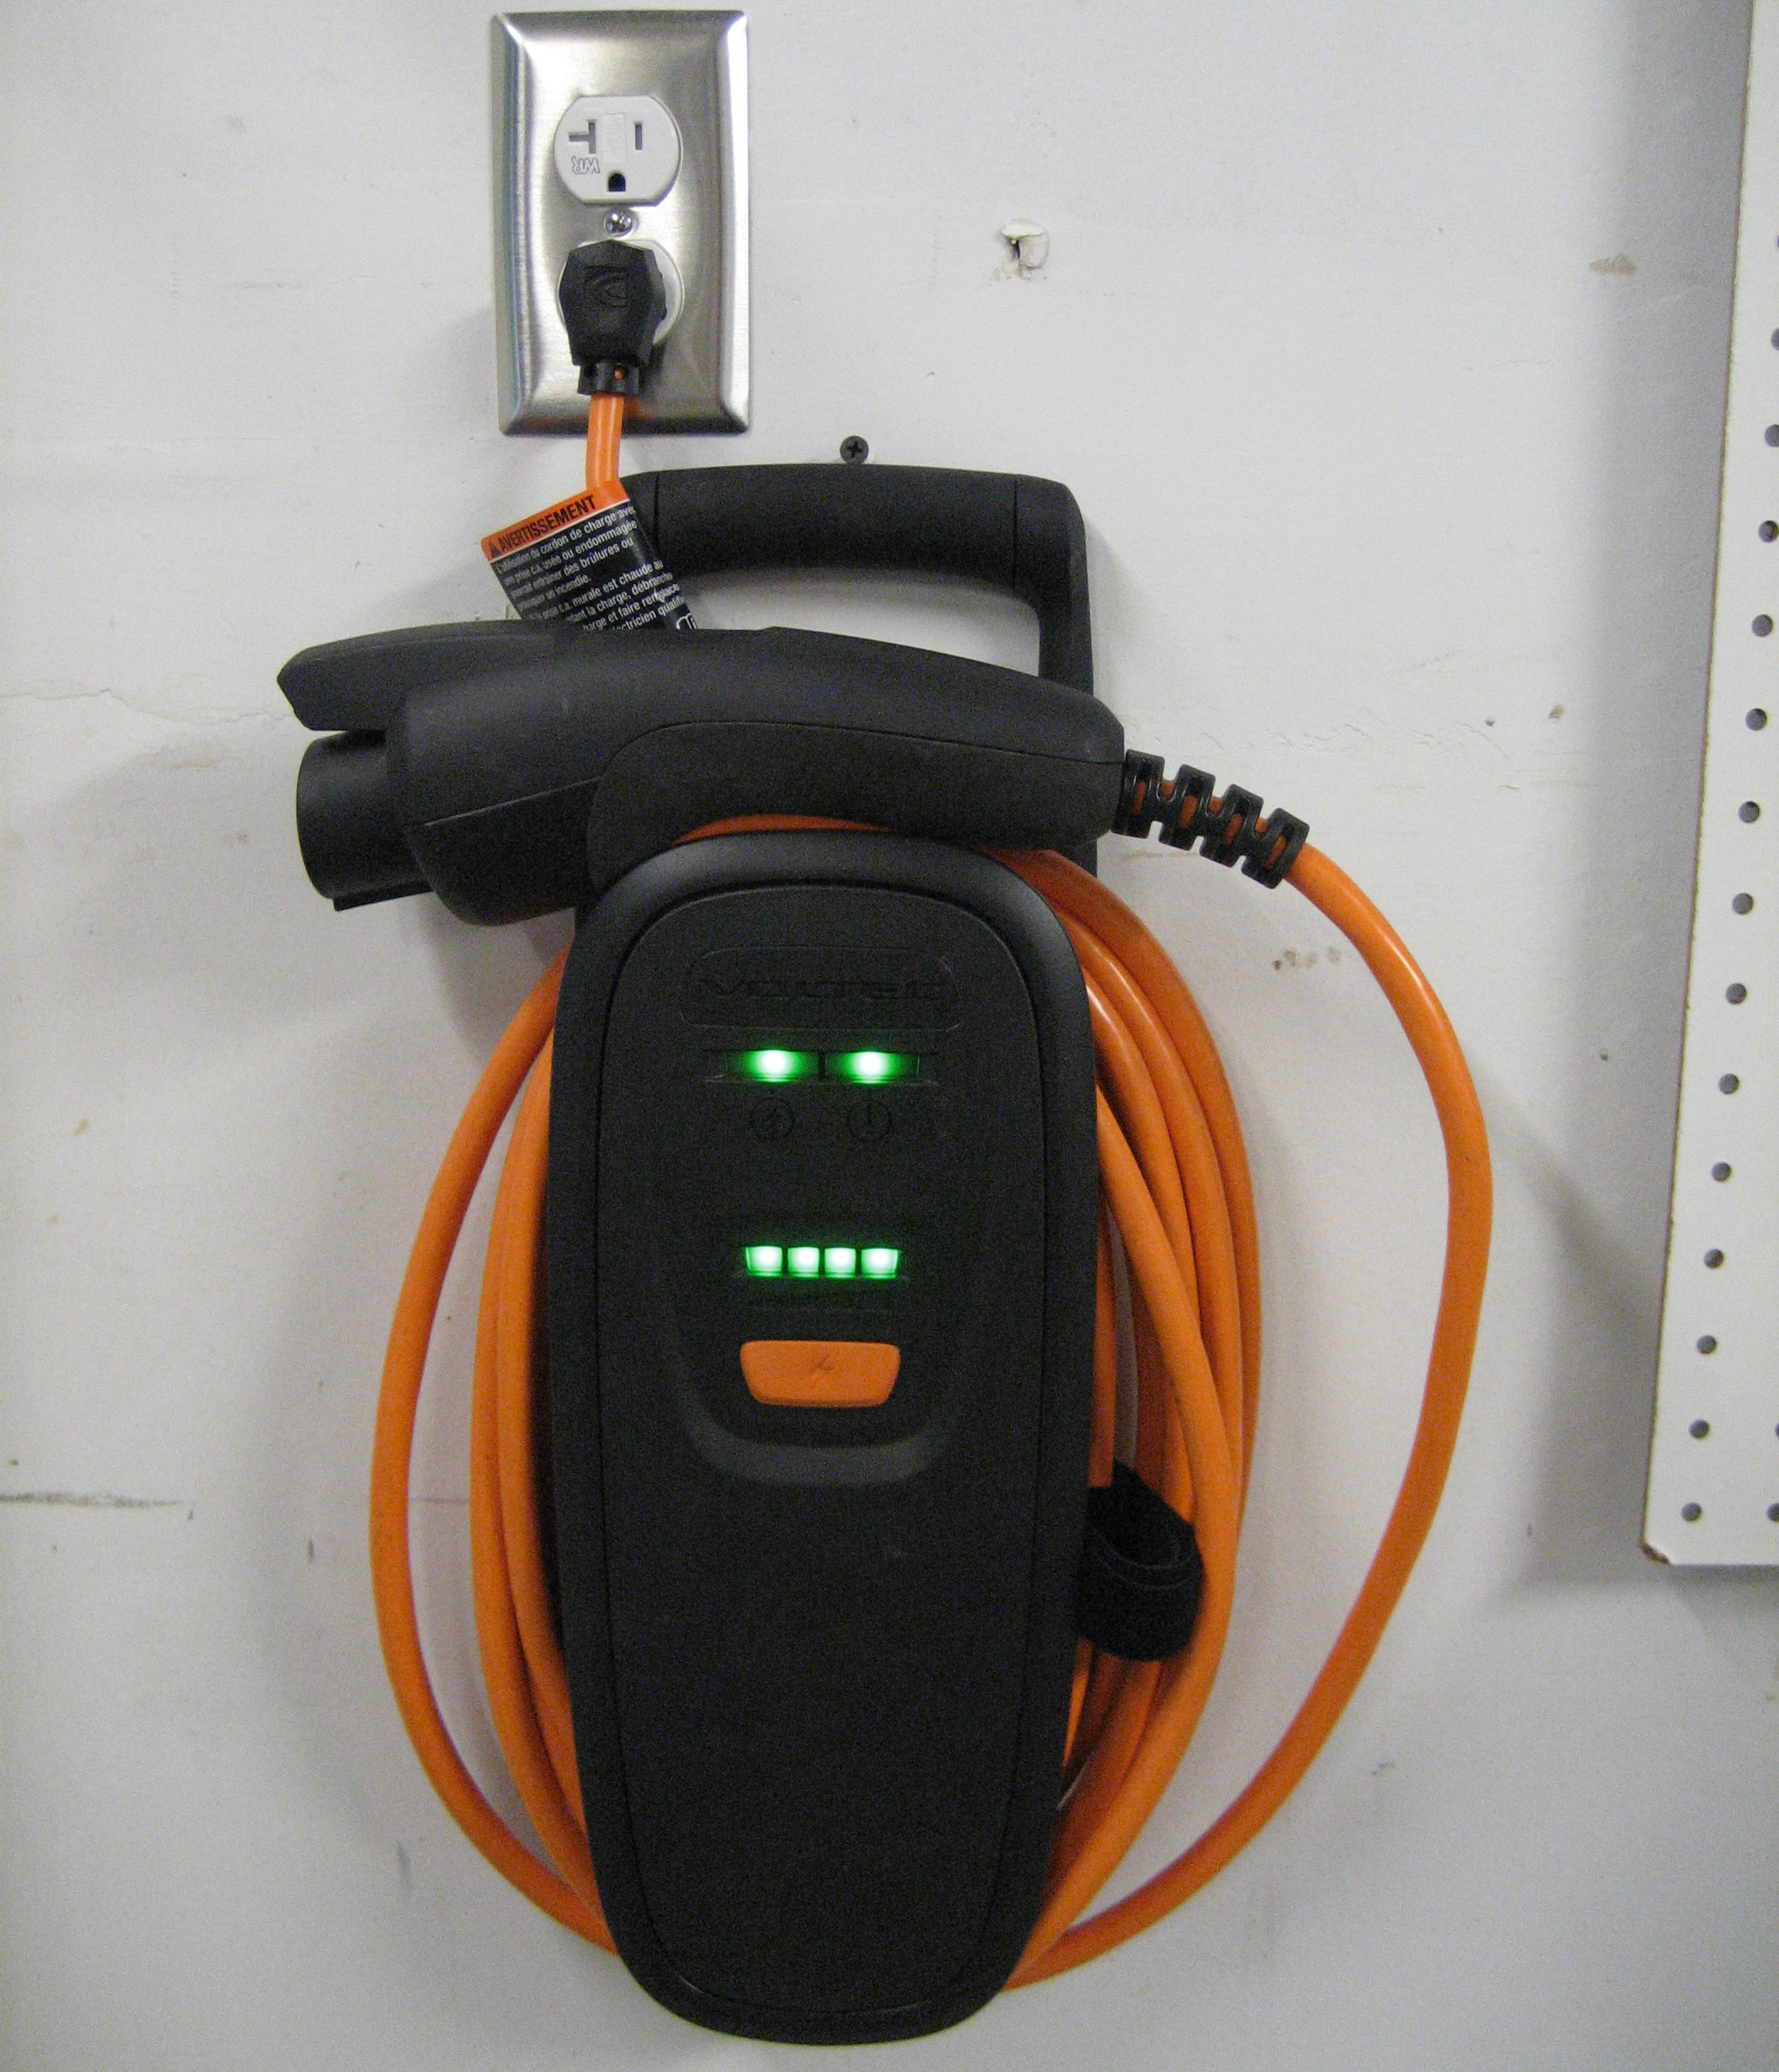 Chevy Volt 120V Charger Mounted on the Wall